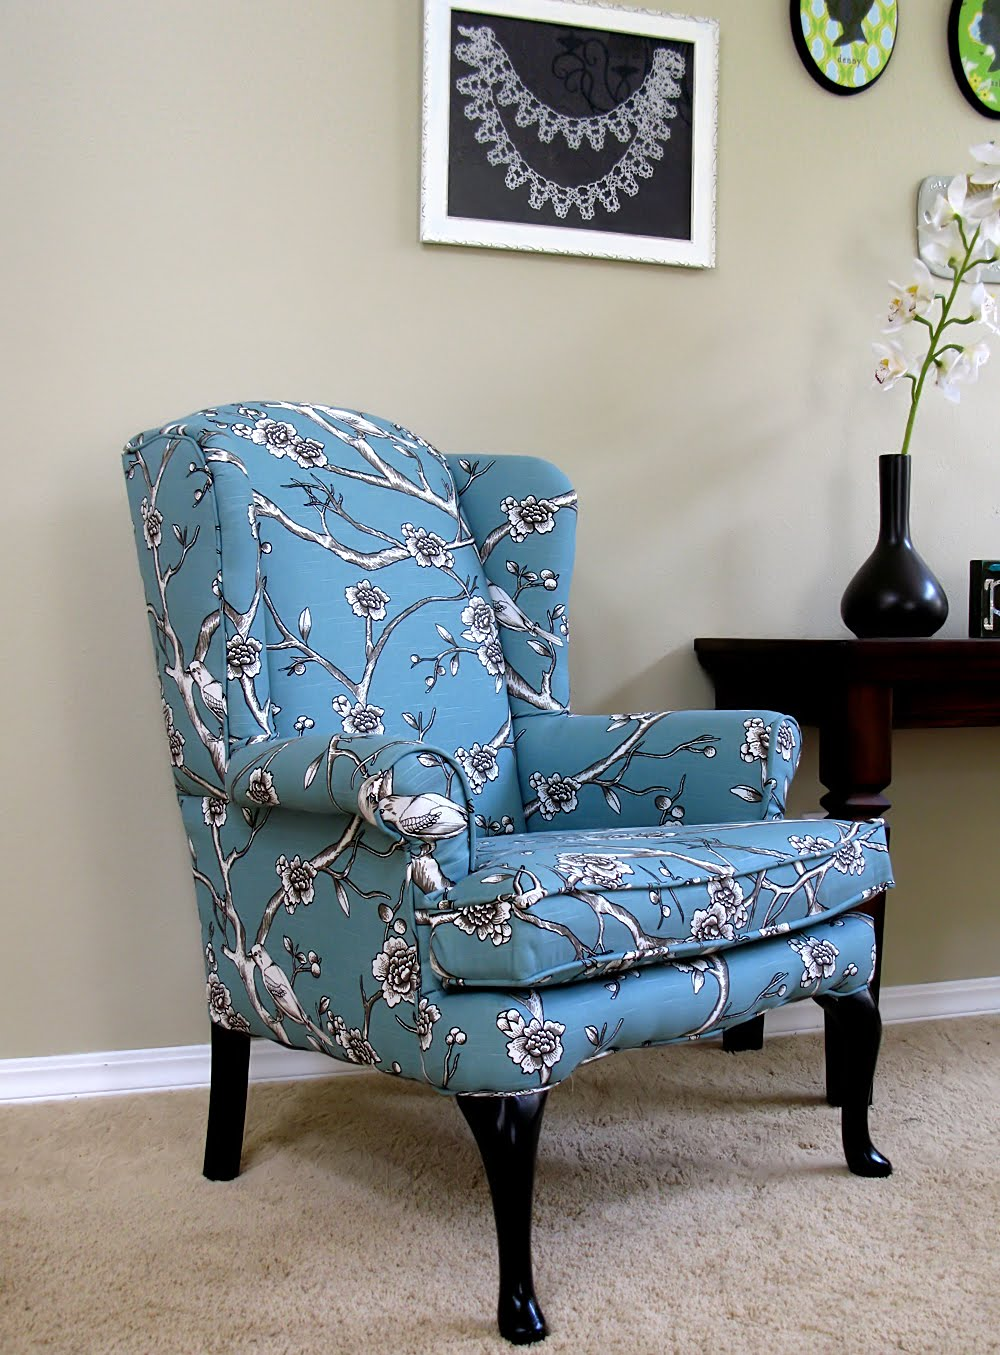 Exceptionnel Blue Turquoise Design Of Upholstered Wingback Chair Near Dark Wooden Table  And Frame